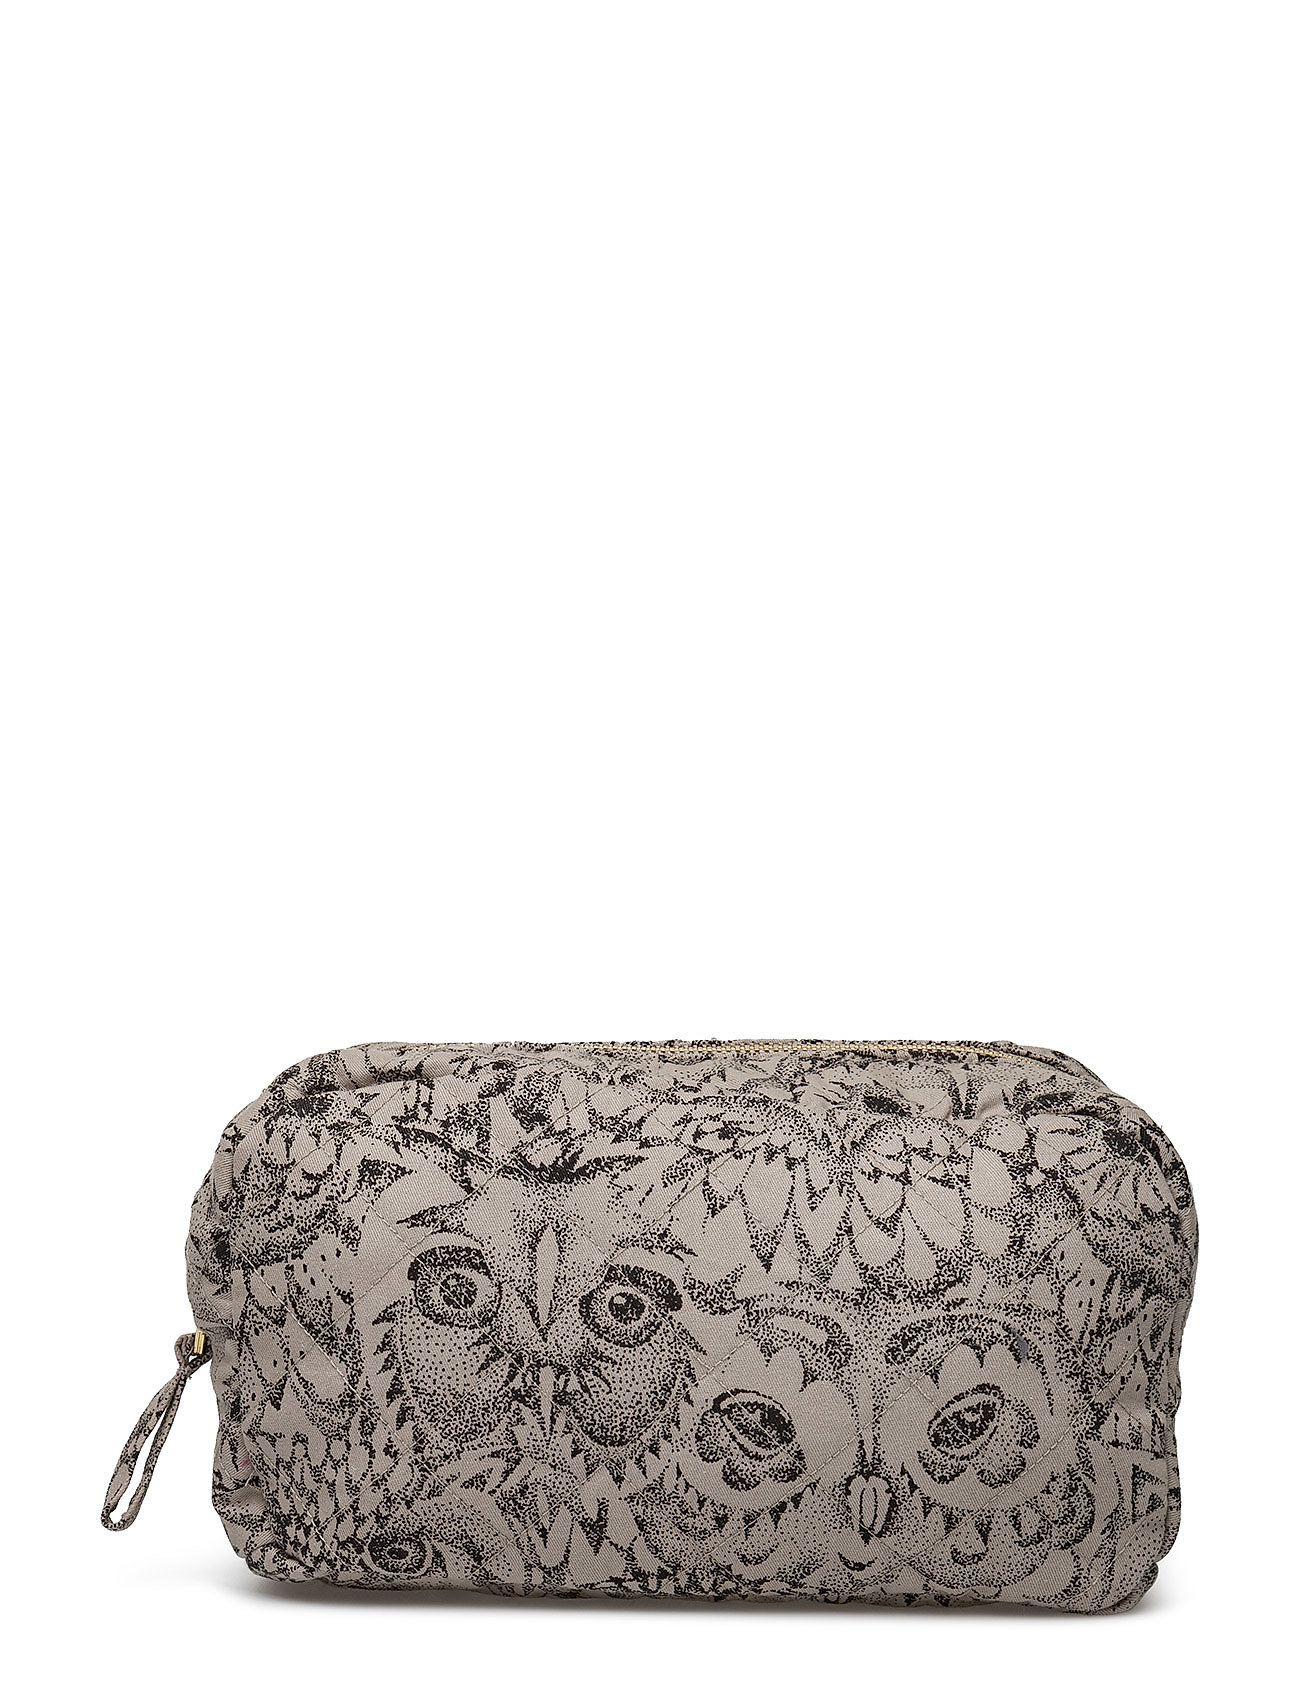 Soft Gallery Toilet Purse - DRIZZLE, AOP OWL